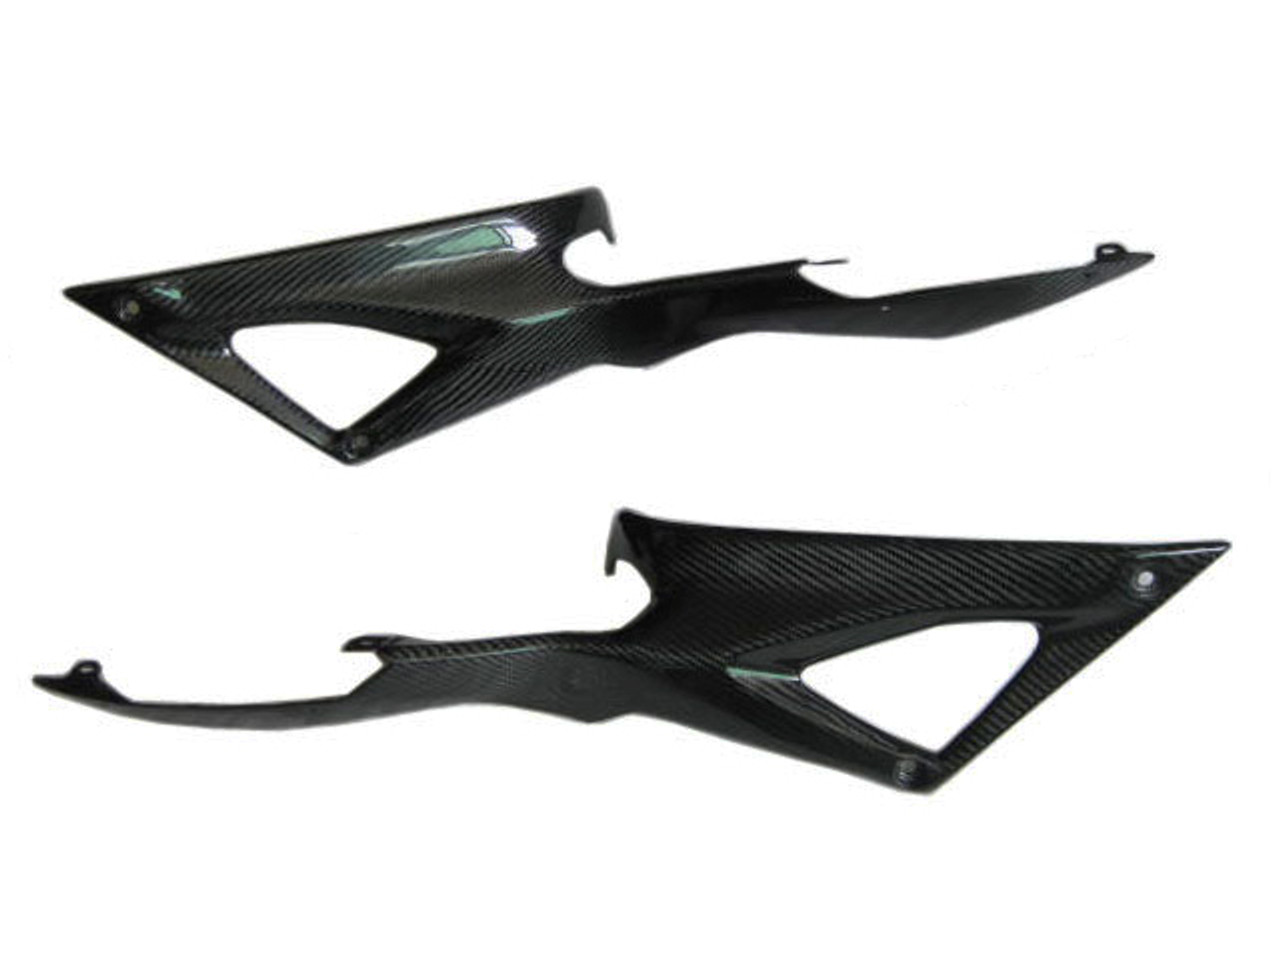 Glossy Twill Weave Carbon Fiber Side Fuel Tank Covers for Ducati 1198,1098, 848